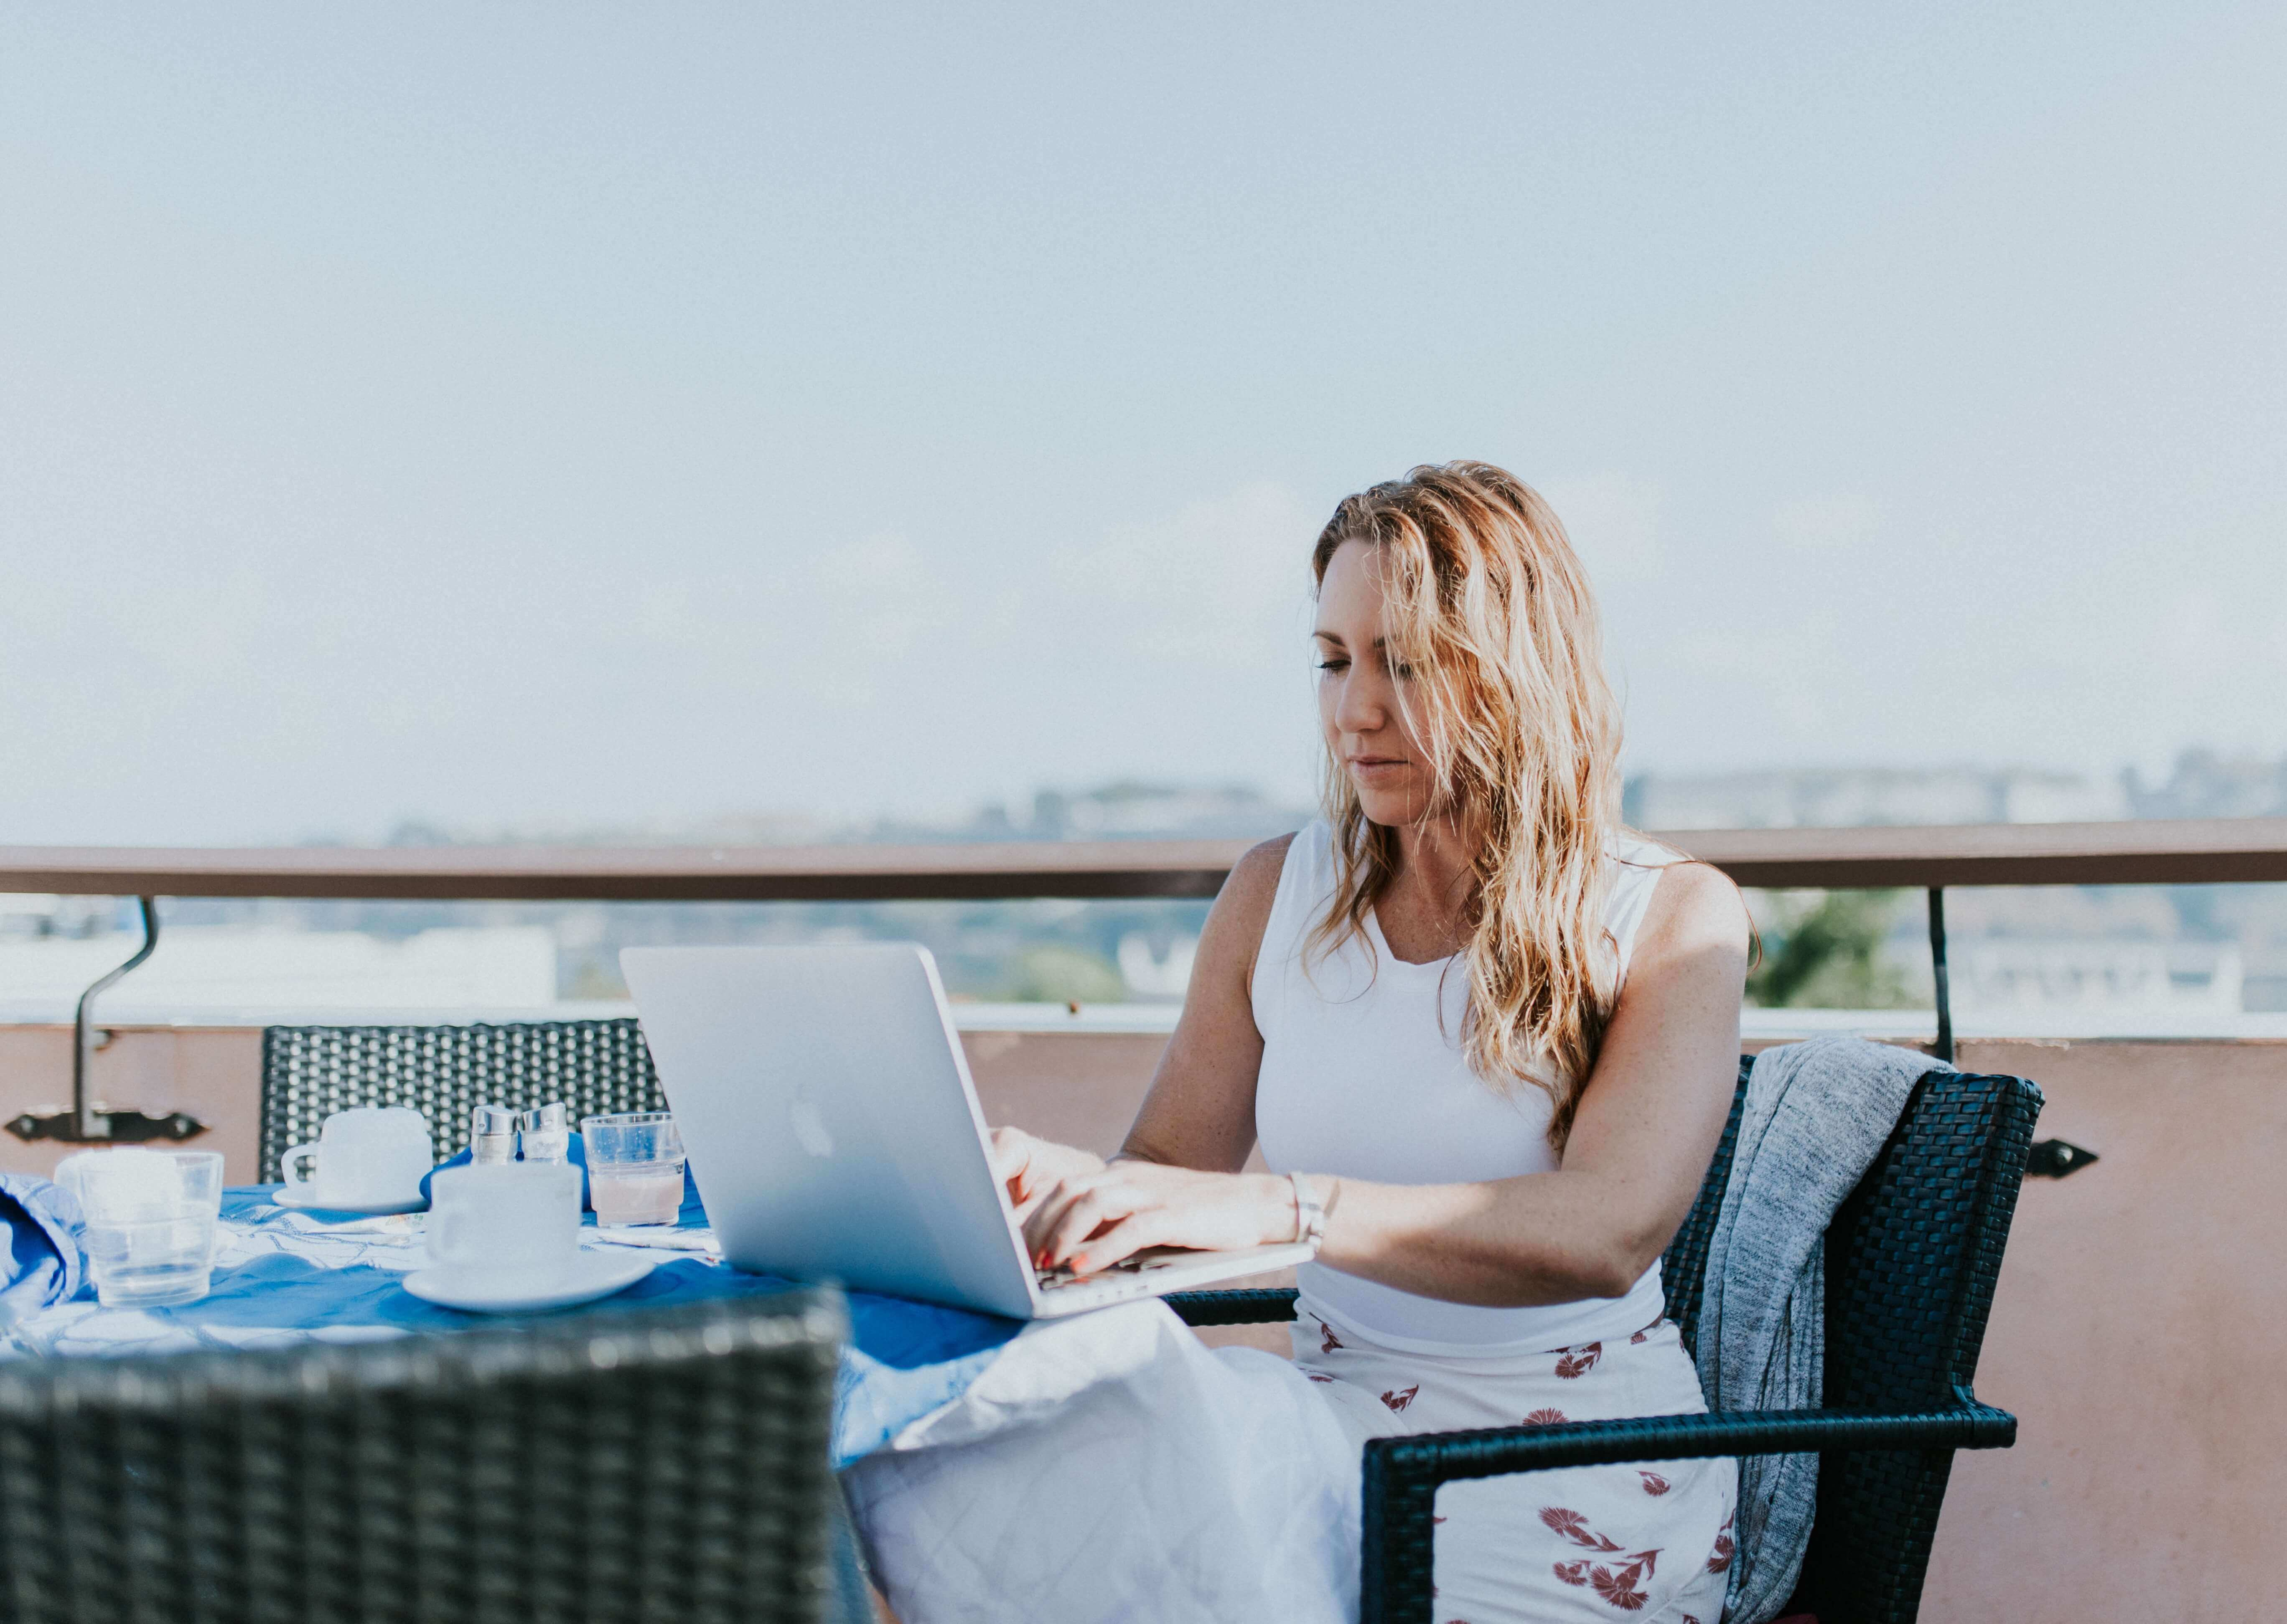 How to Become a Digital Nomad - Run a Successful Business